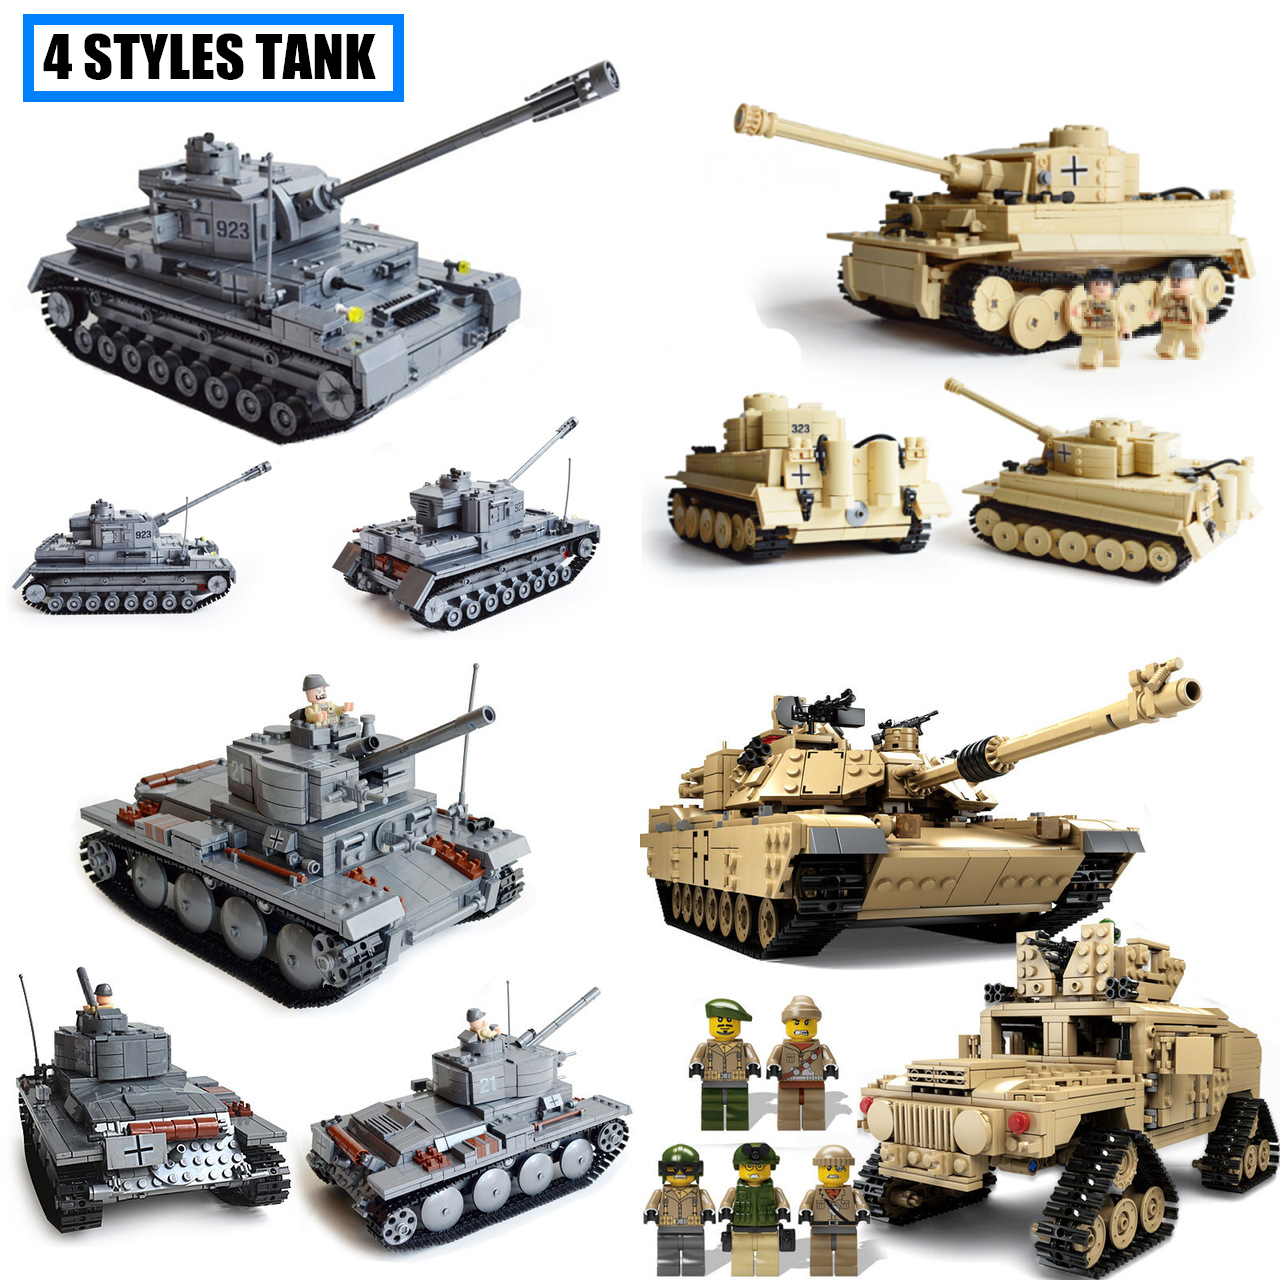 KAZI Heavy Tank Building Blocks bricks compatible legoes Military figures city Toys Weapon Germany Tank Model gift kid set 519pcs city police station building blocks action figures set transform robot compatible with 60047 for kid gift